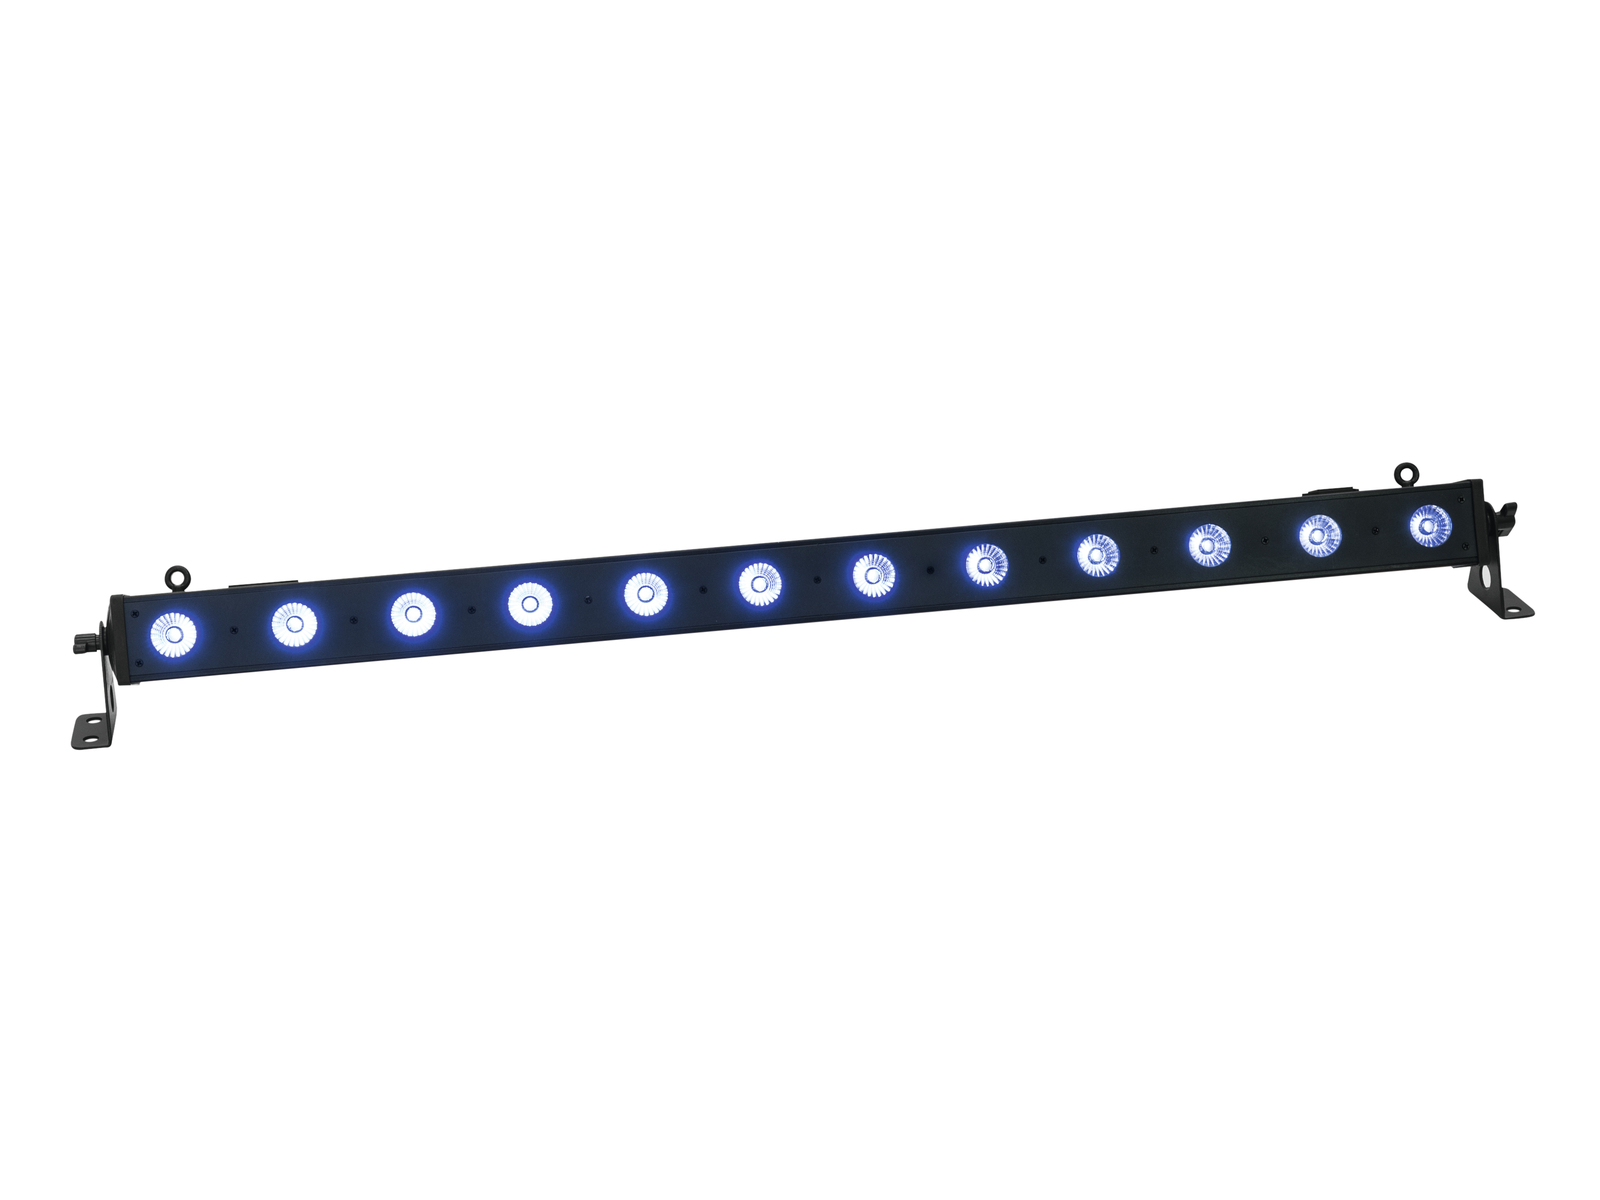 EUROLITE LED BAR-12 QLC RGBW Bar